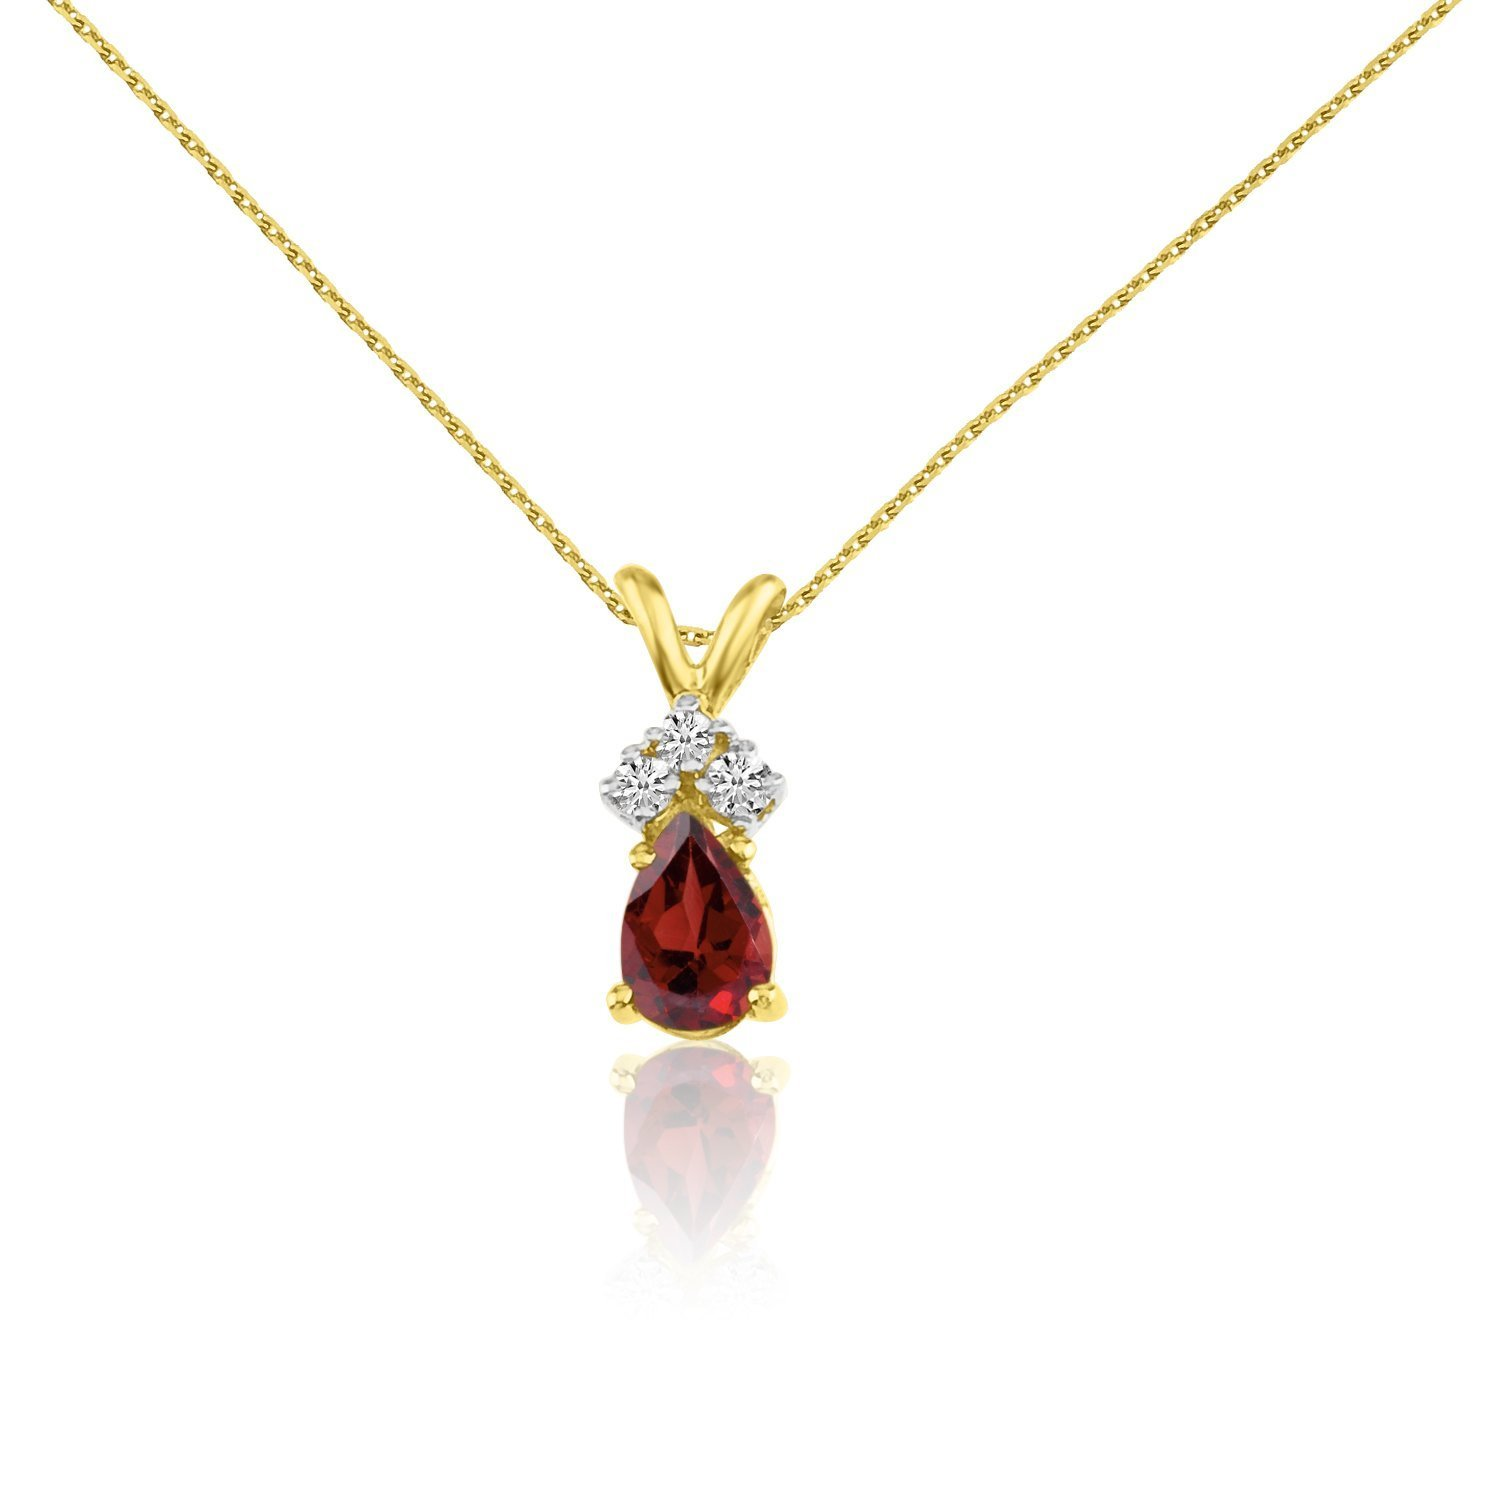 0.55 Cttw. FB Jewels Solid 14k Yellow Gold Genuine Birthstone Gemstone Pear Pendant with Diamonds